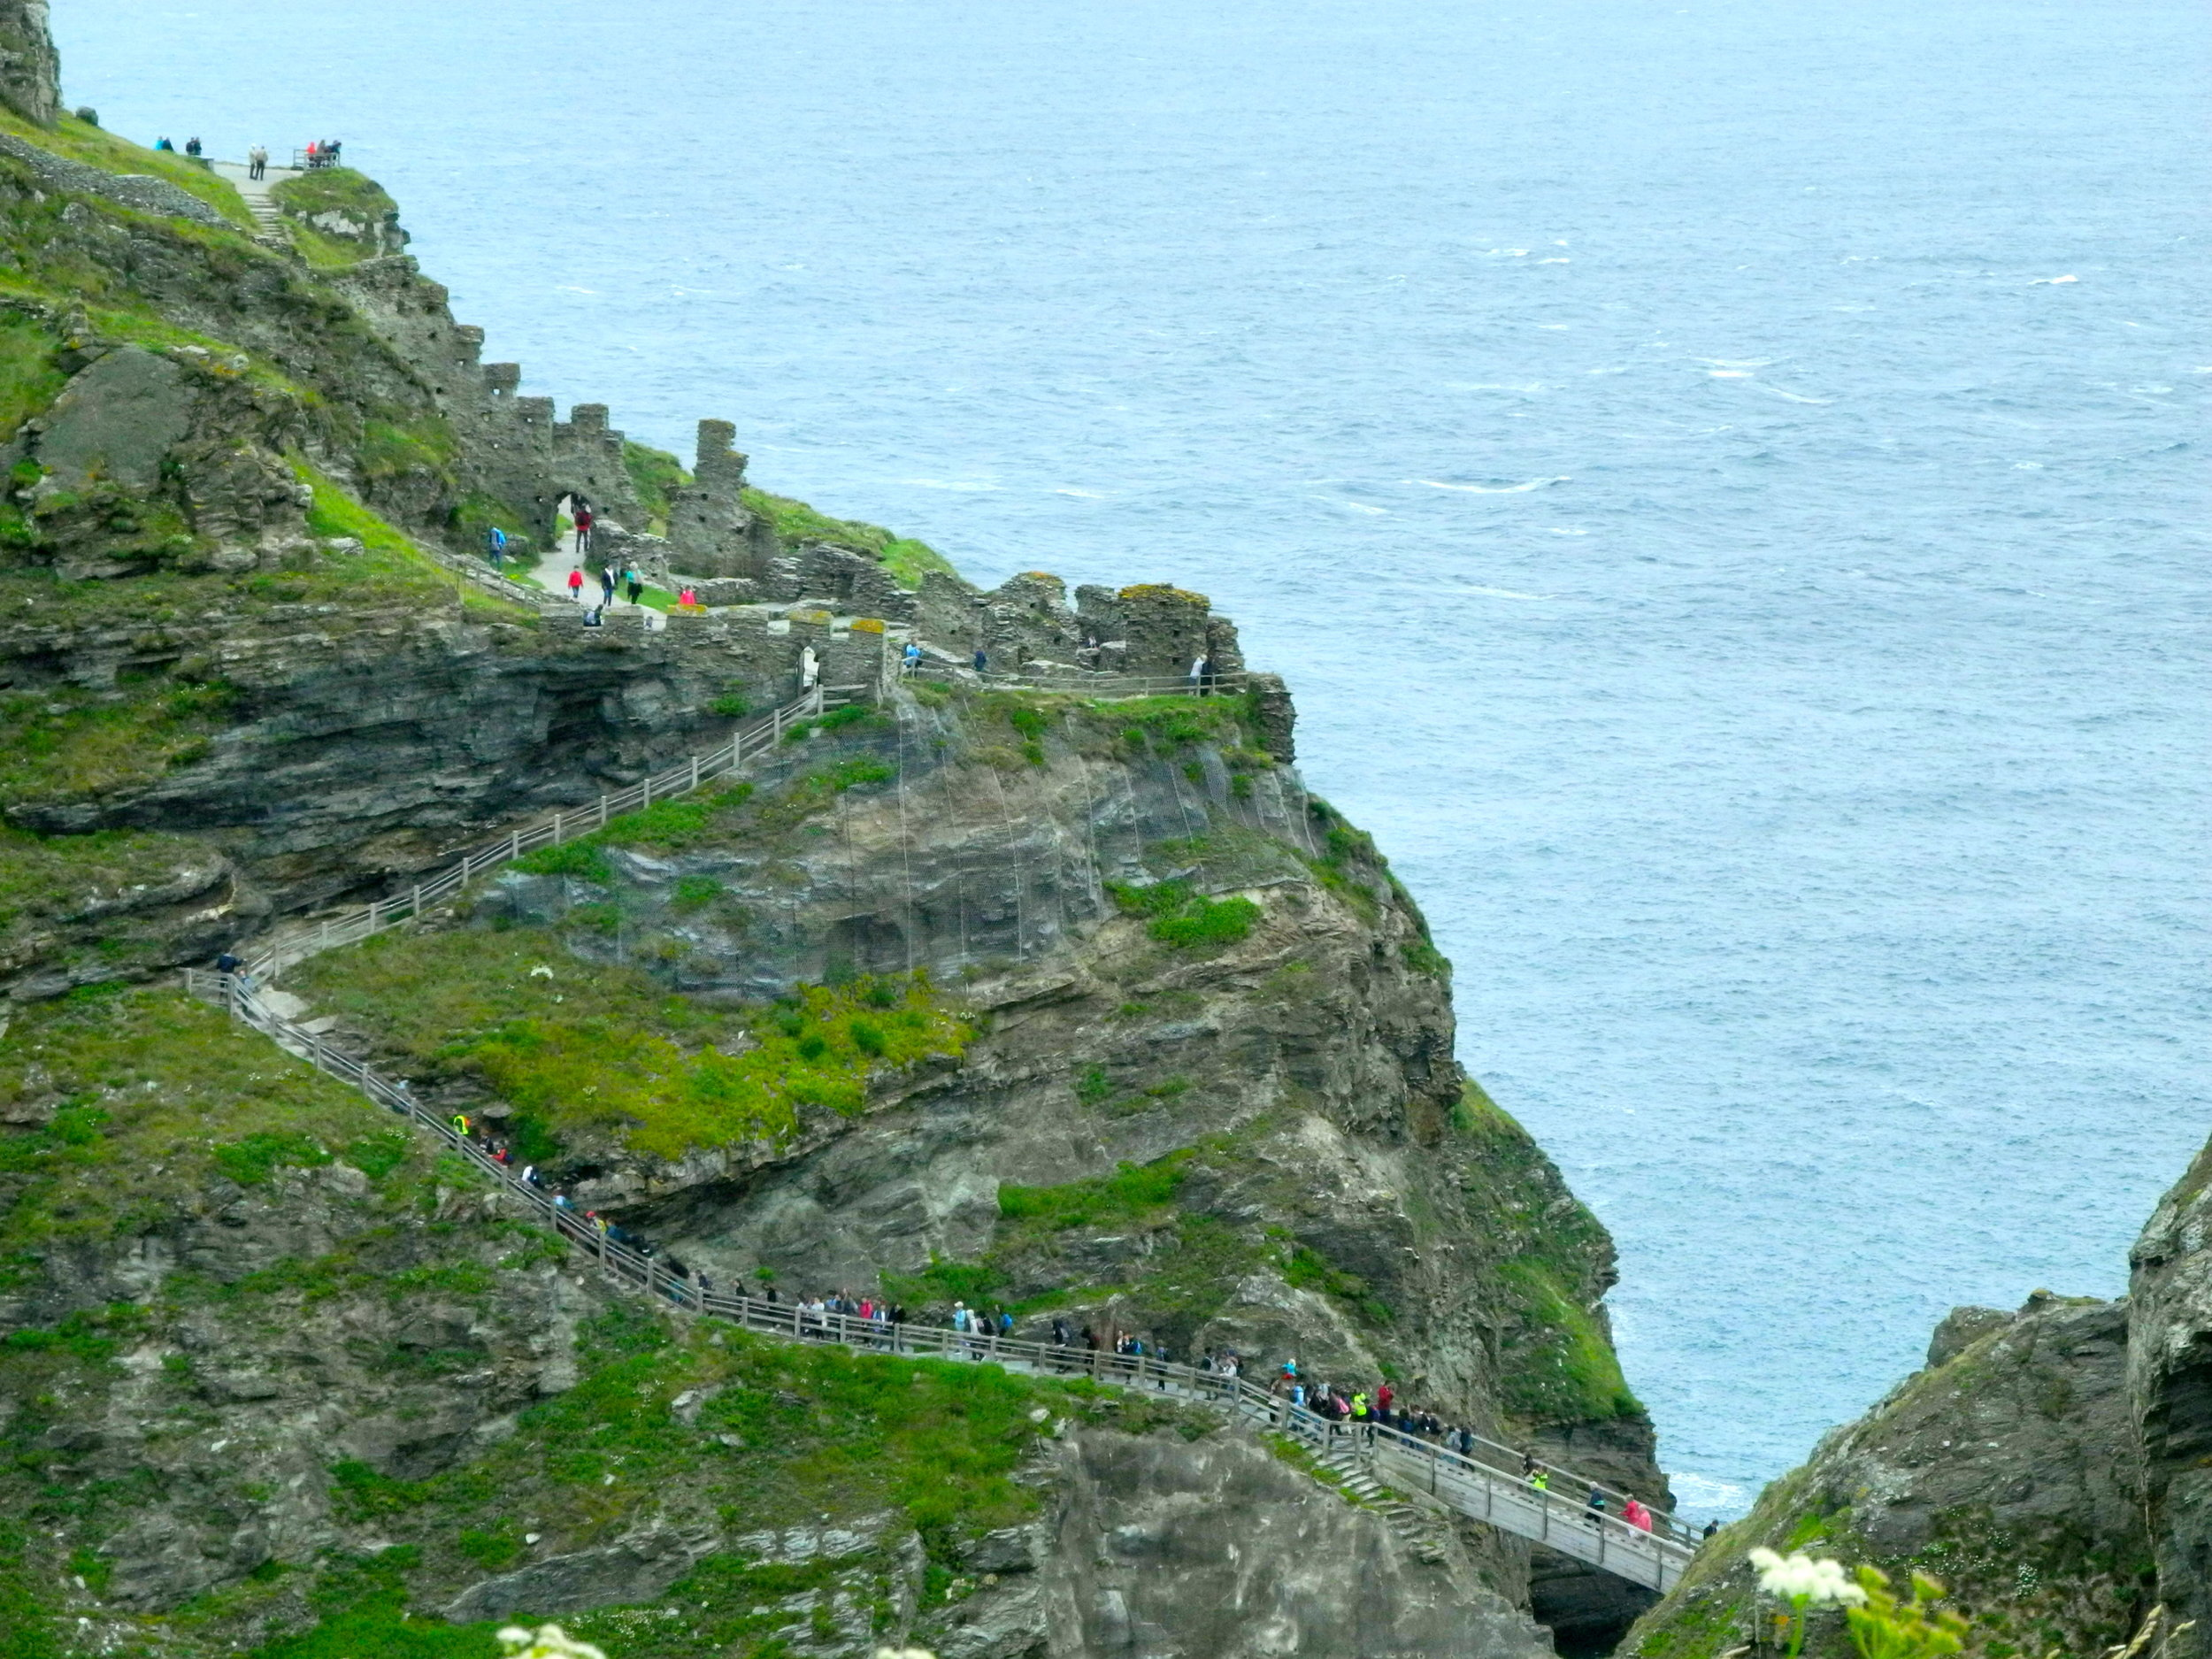 Access path from the Cornwall mainland (on the left) to Tintagel Island.